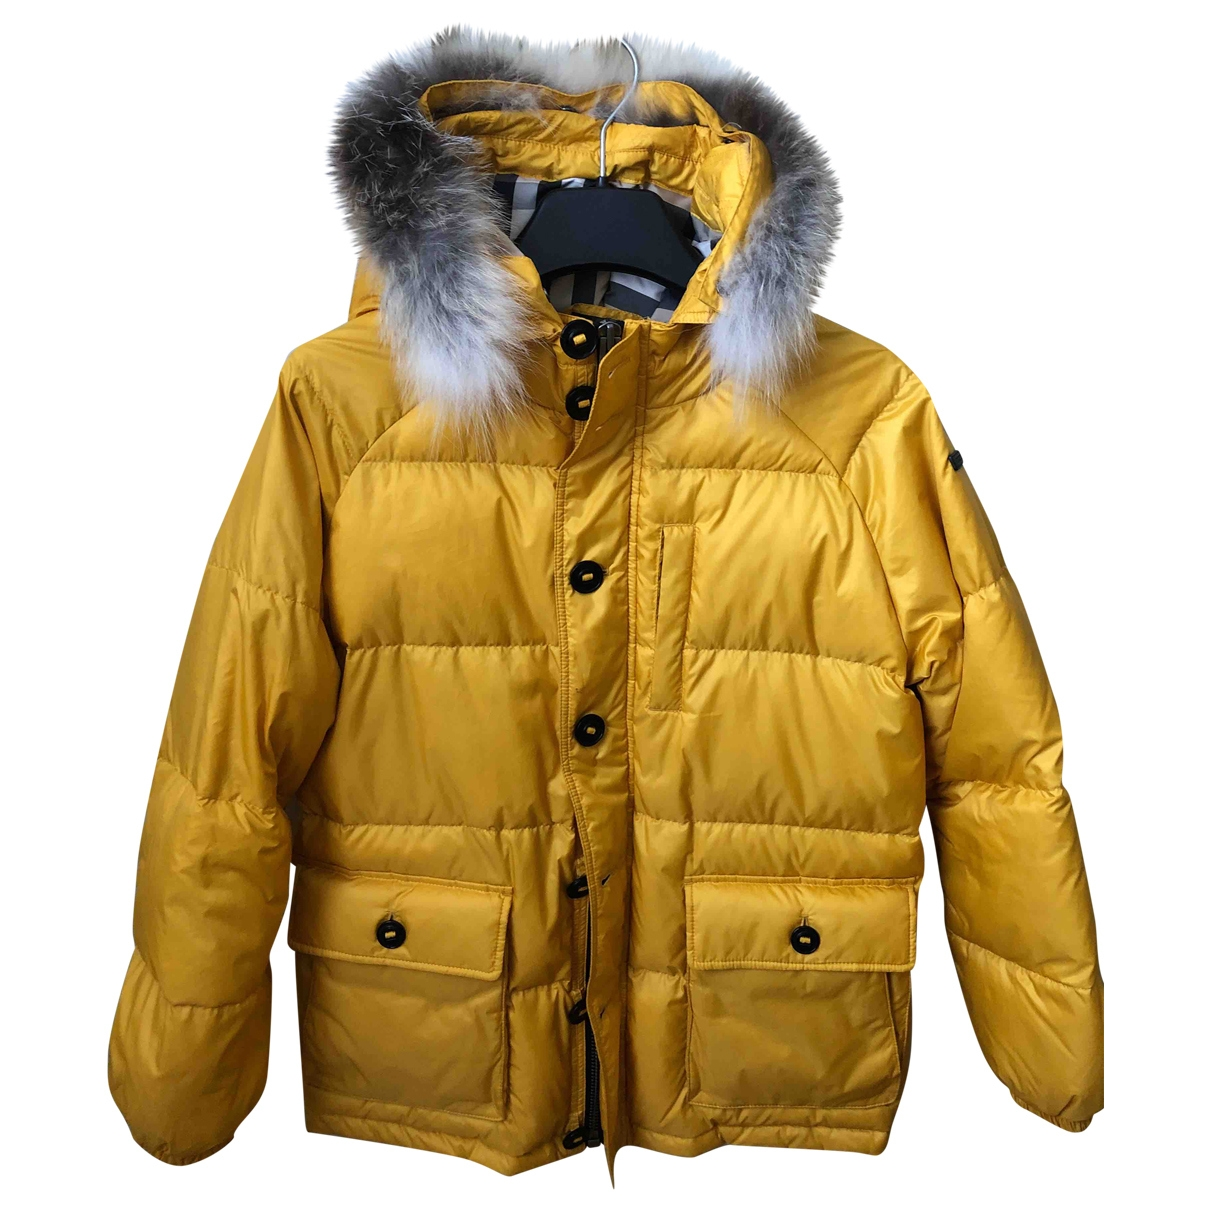 Burberry \N Yellow jacket & coat for Kids 12 years - XS FR